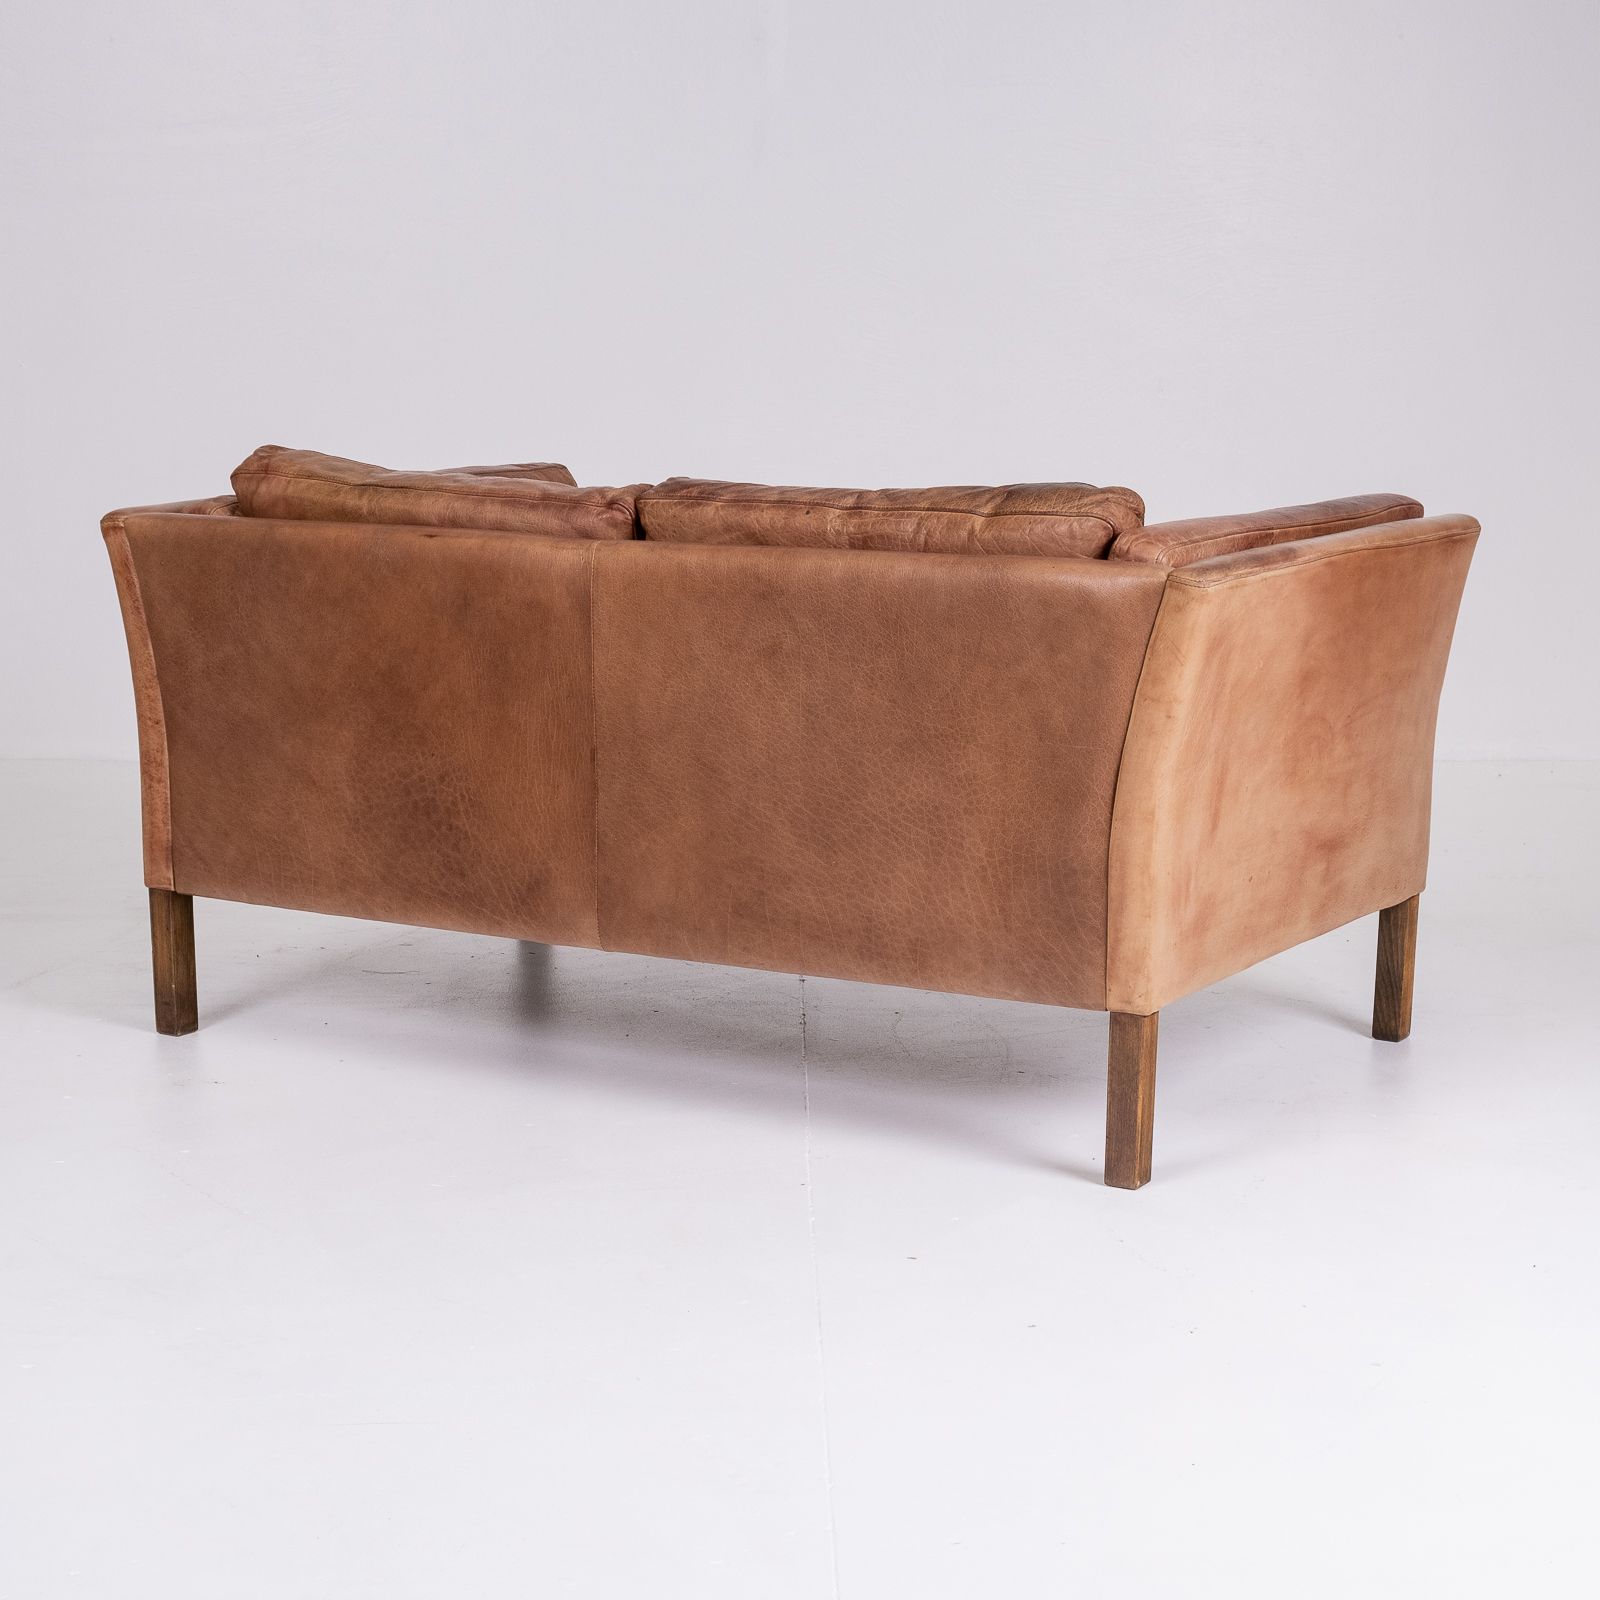 2 Seat Sofa By Stouby In Tan Leather, 1960s, Denmark 04